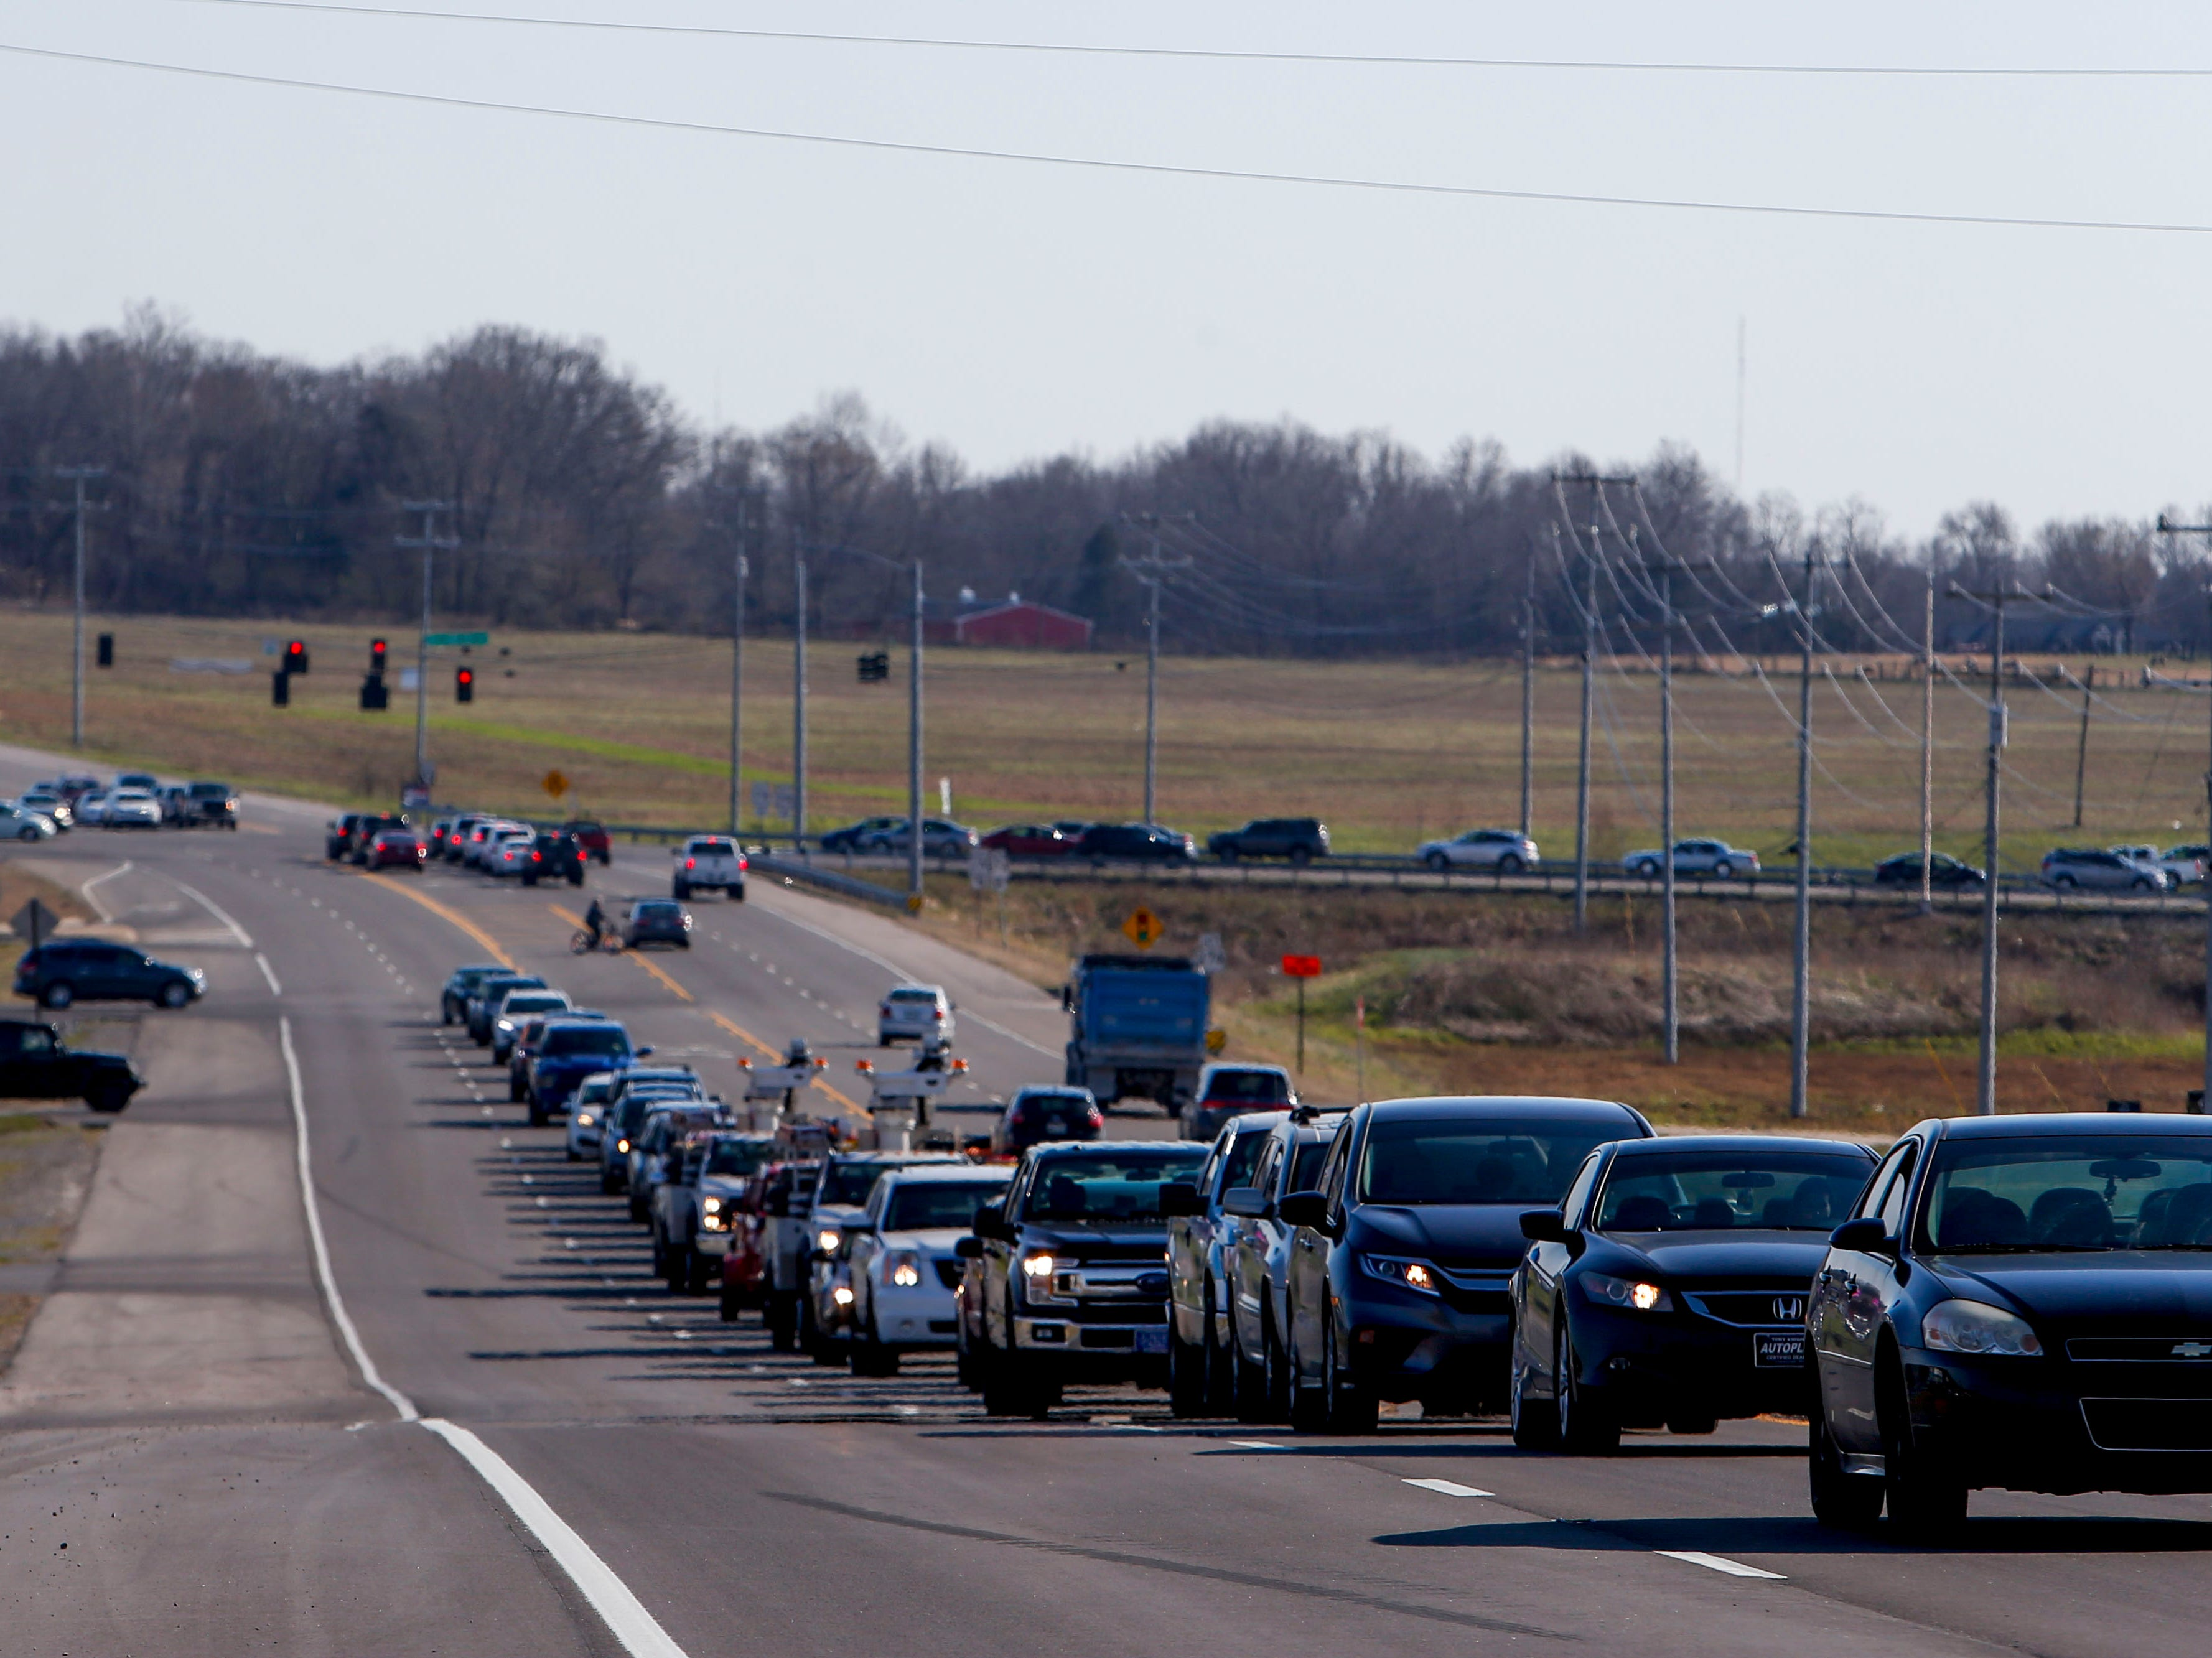 Traffic lines up down Trenton Road near Needmore Road in Clarksville, Tenn., on Tuesday, March 19, 2019. The widening of Trenton Road from north of state Highway 374 (101st Airborne Division Parkway) to south of I-24 is on the state's IMPROVEAct list of accelerated road projects.